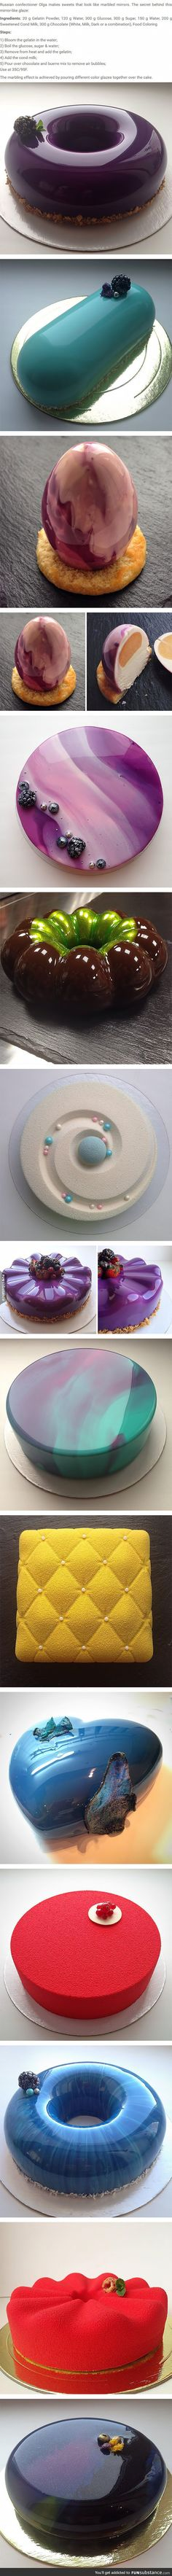 Cakes With This Mirror Finish Are Too Perfect To Be Eaten